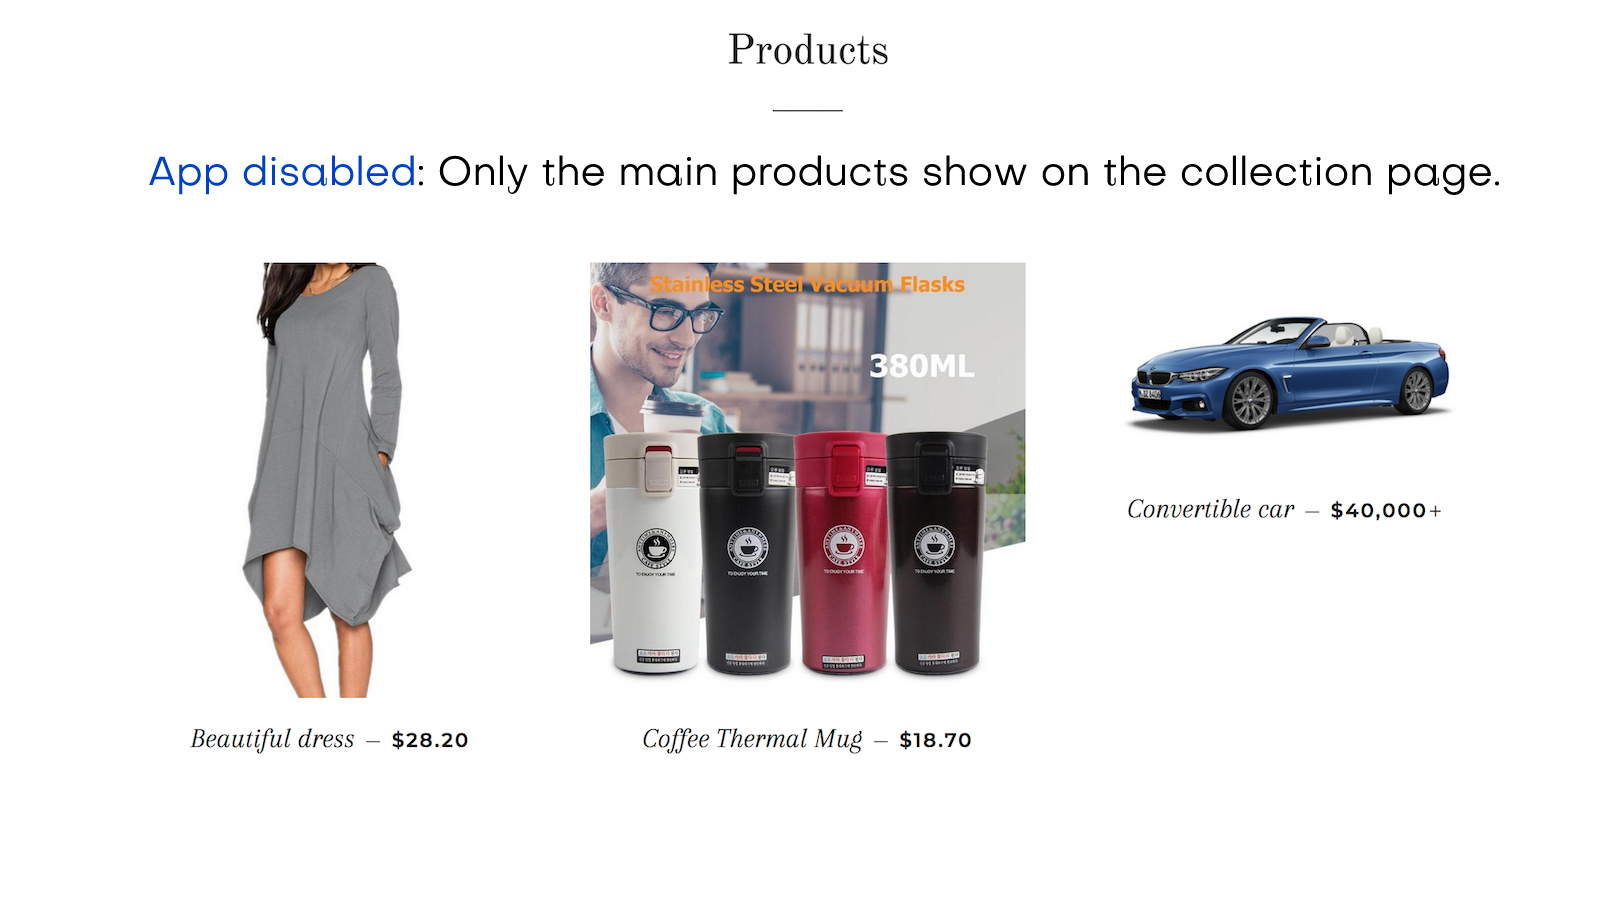 App disabled: Only the main products show on collection page